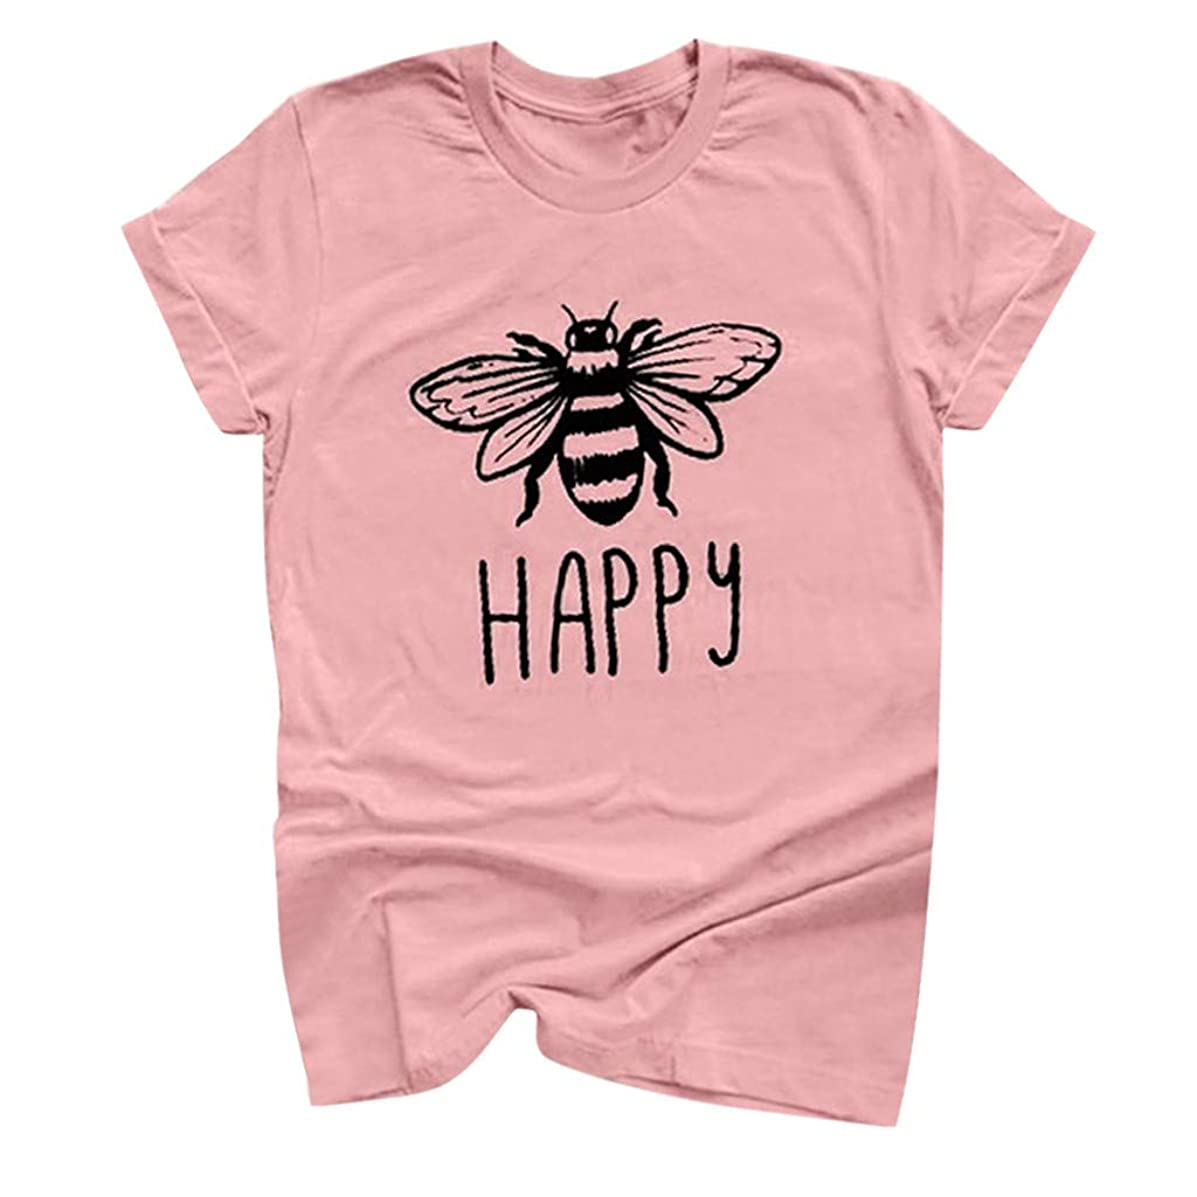 Tantisy ??? Womens Be Happy Graphic Tees Casual Short Sleeve Round T-Shirts Blouse Tops